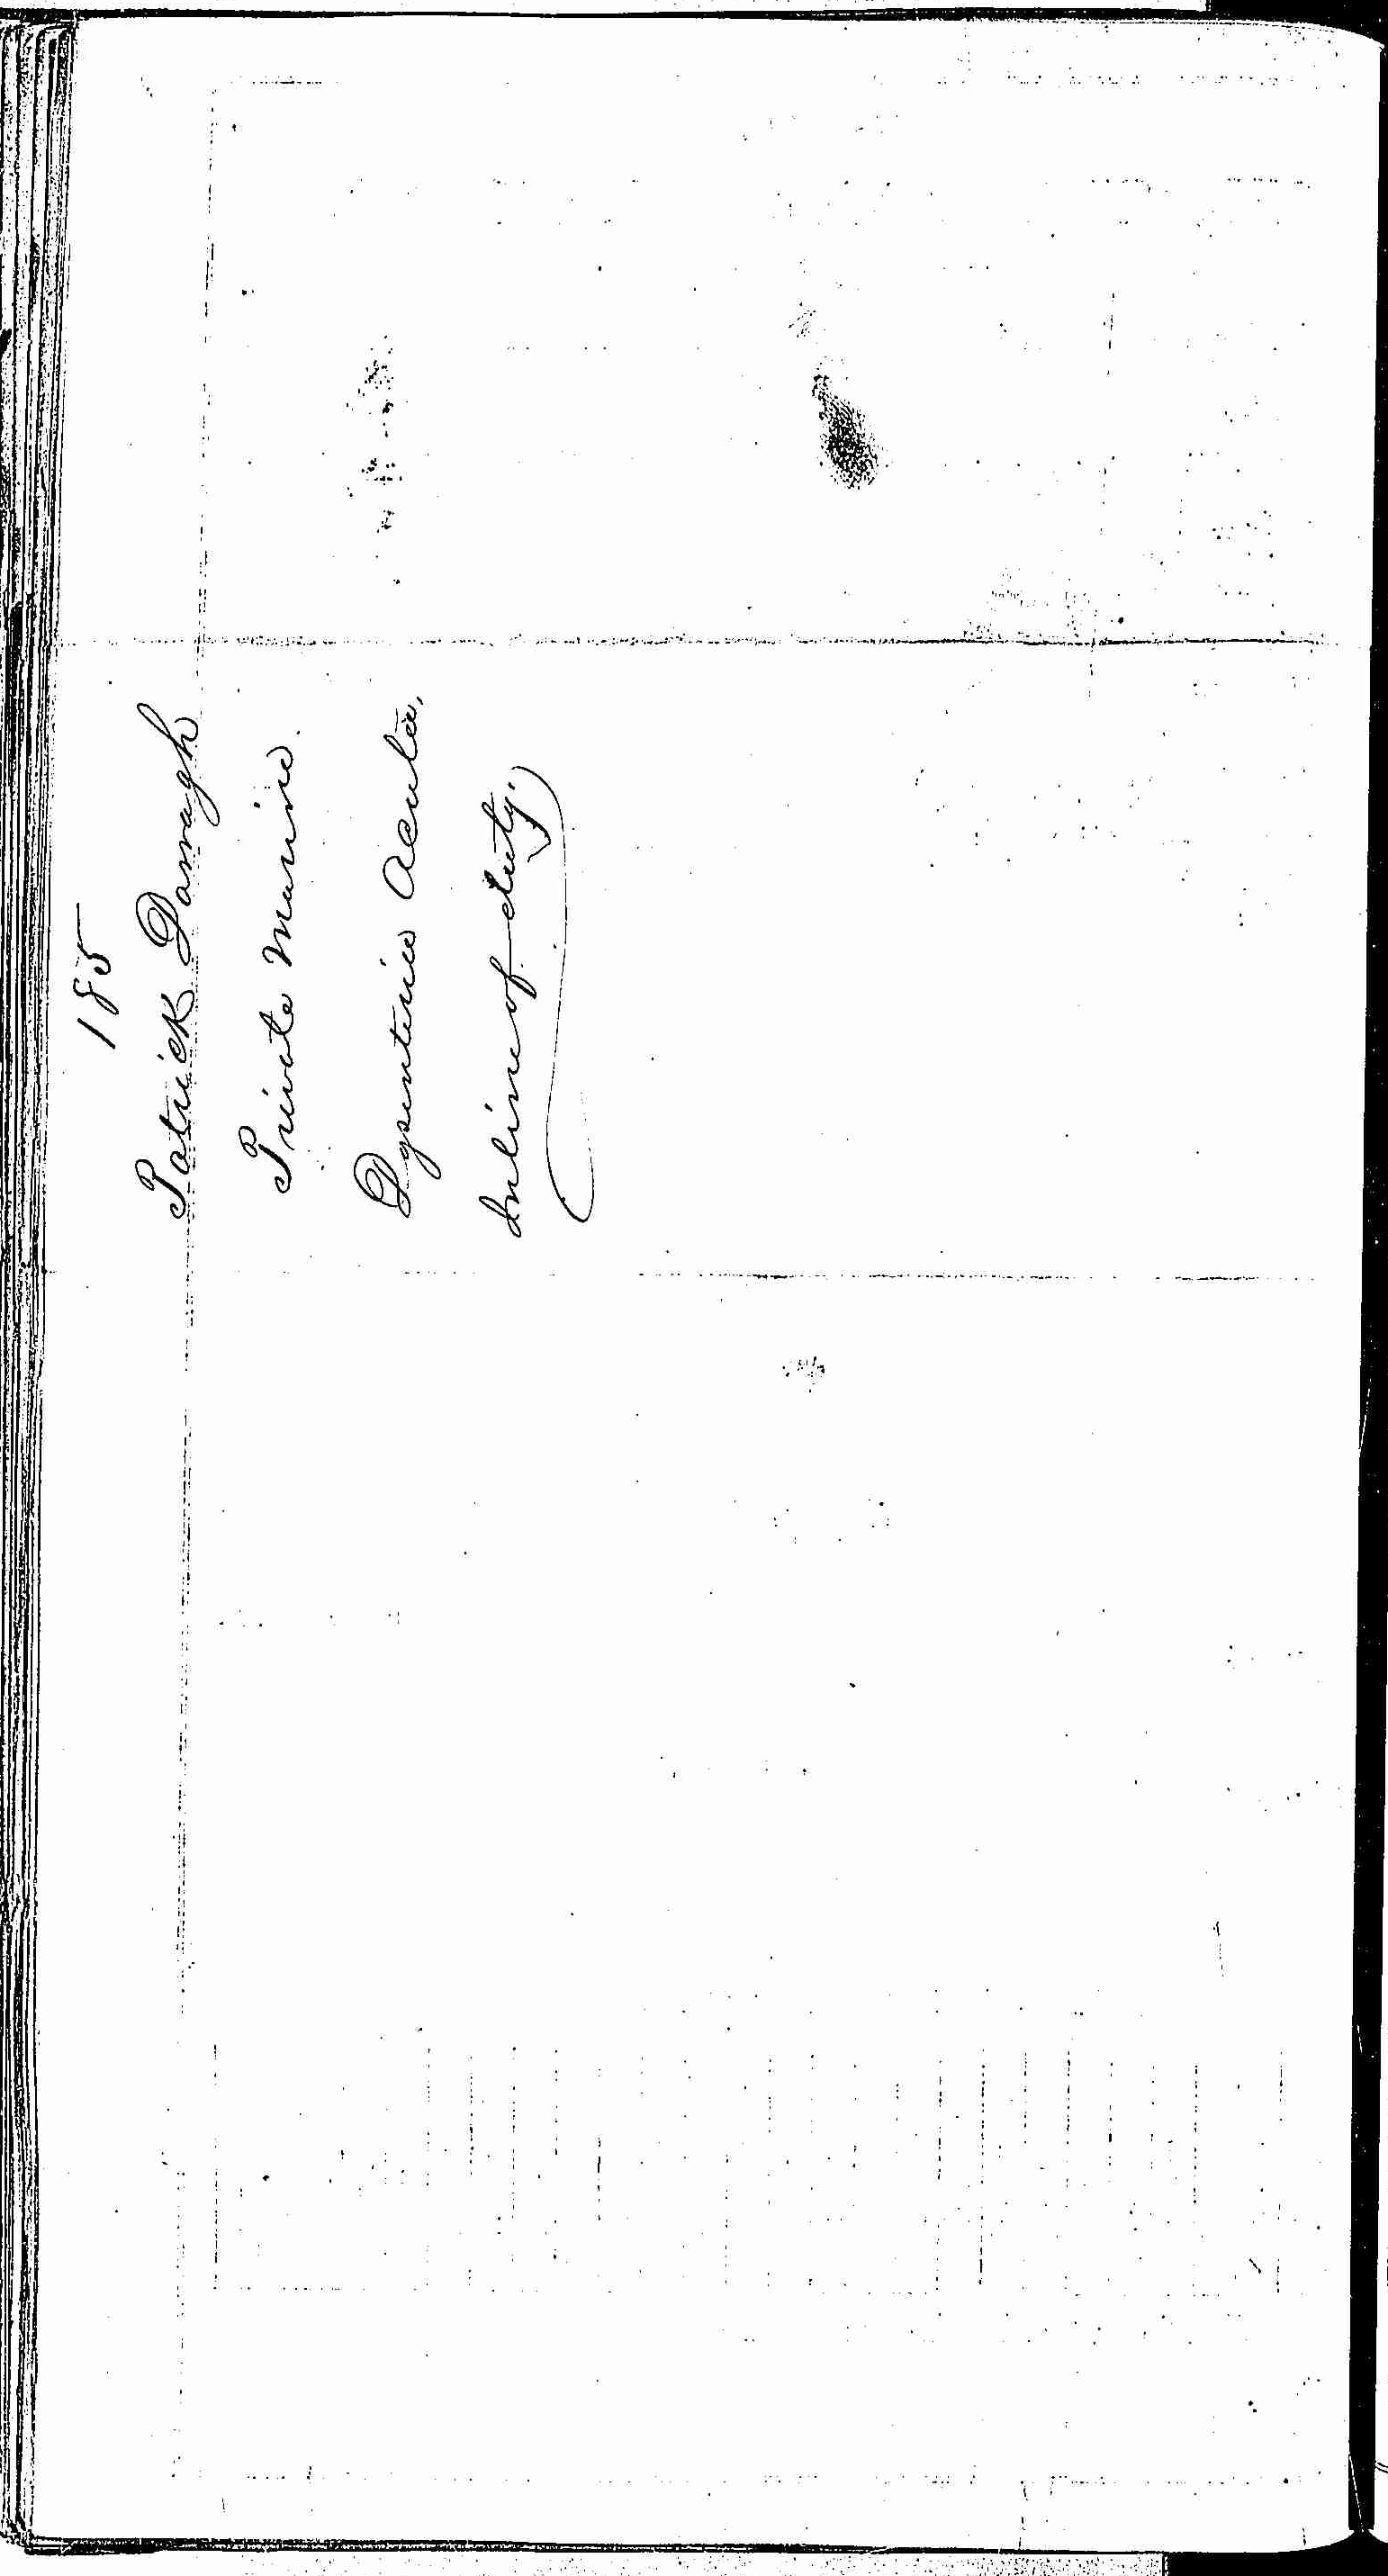 Entry for Patrick Darragh (page 2 of 2) in the log Hospital Tickets and Case Papers - Naval Hospital - Washington, D.C. - 1866-68